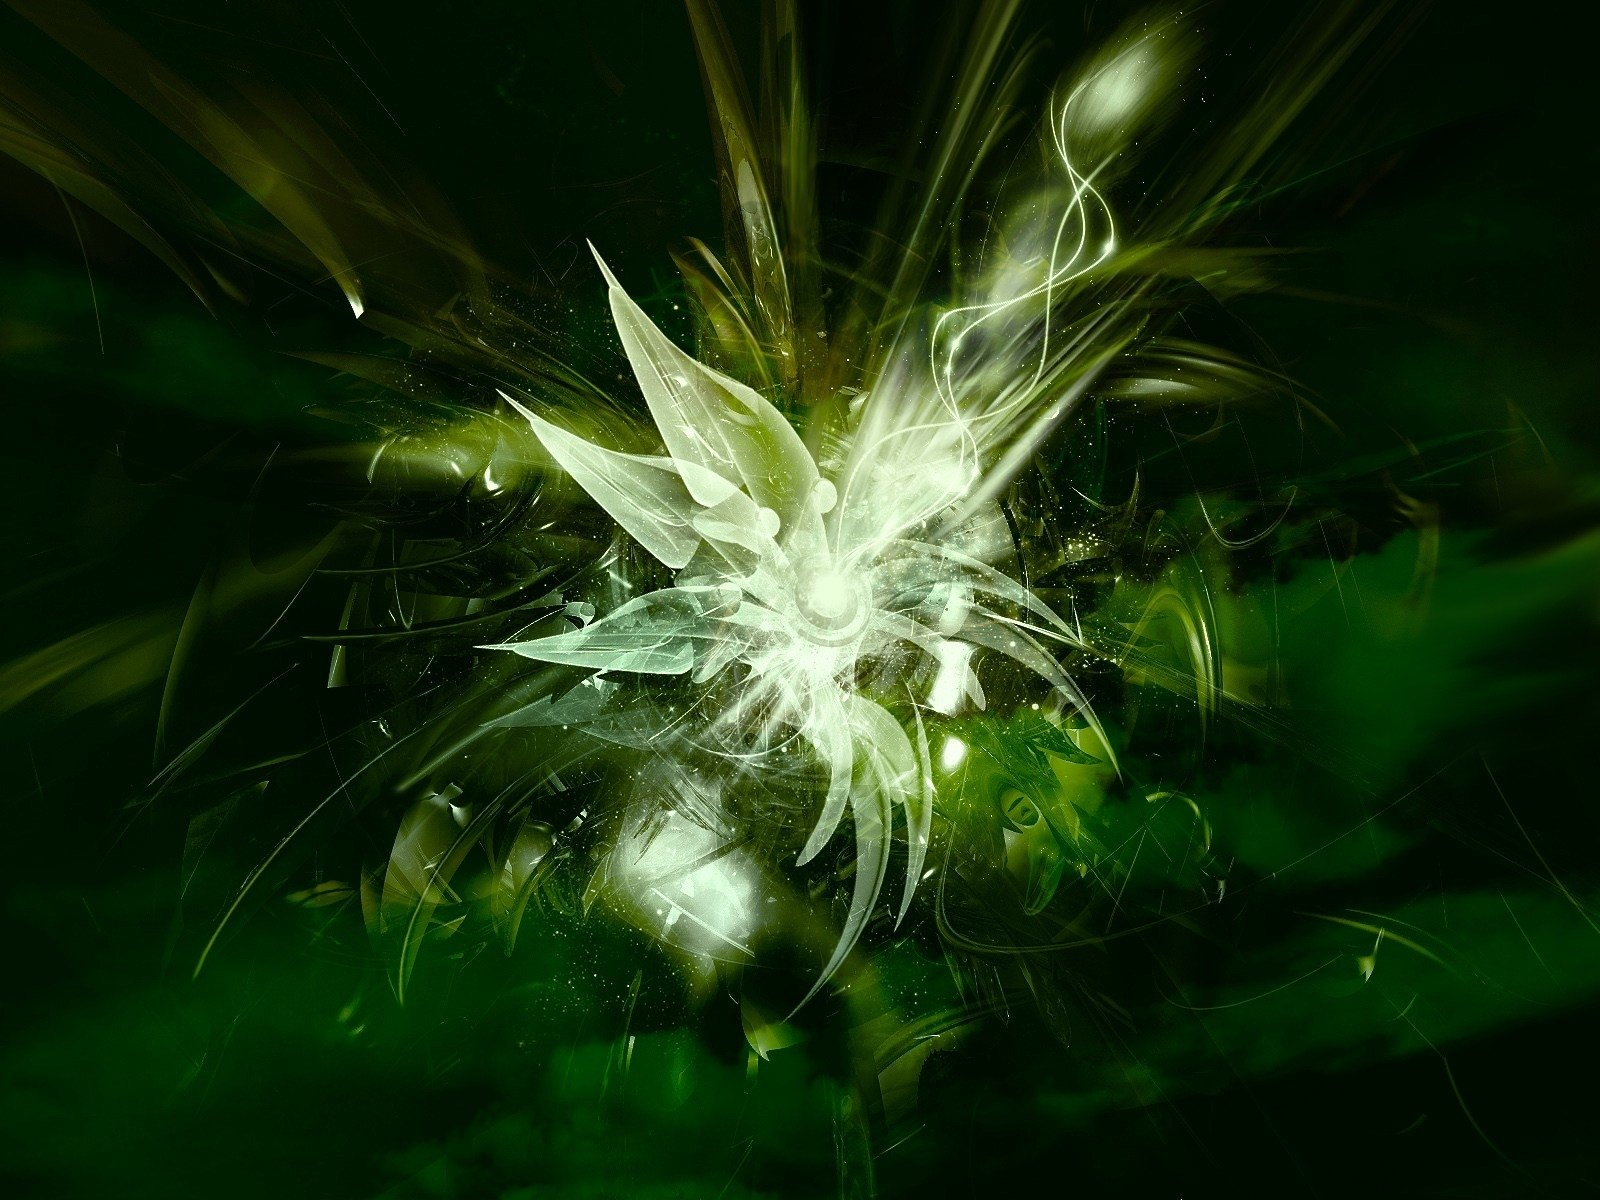 Abstract - Green  Texture Abstract Wallpaper